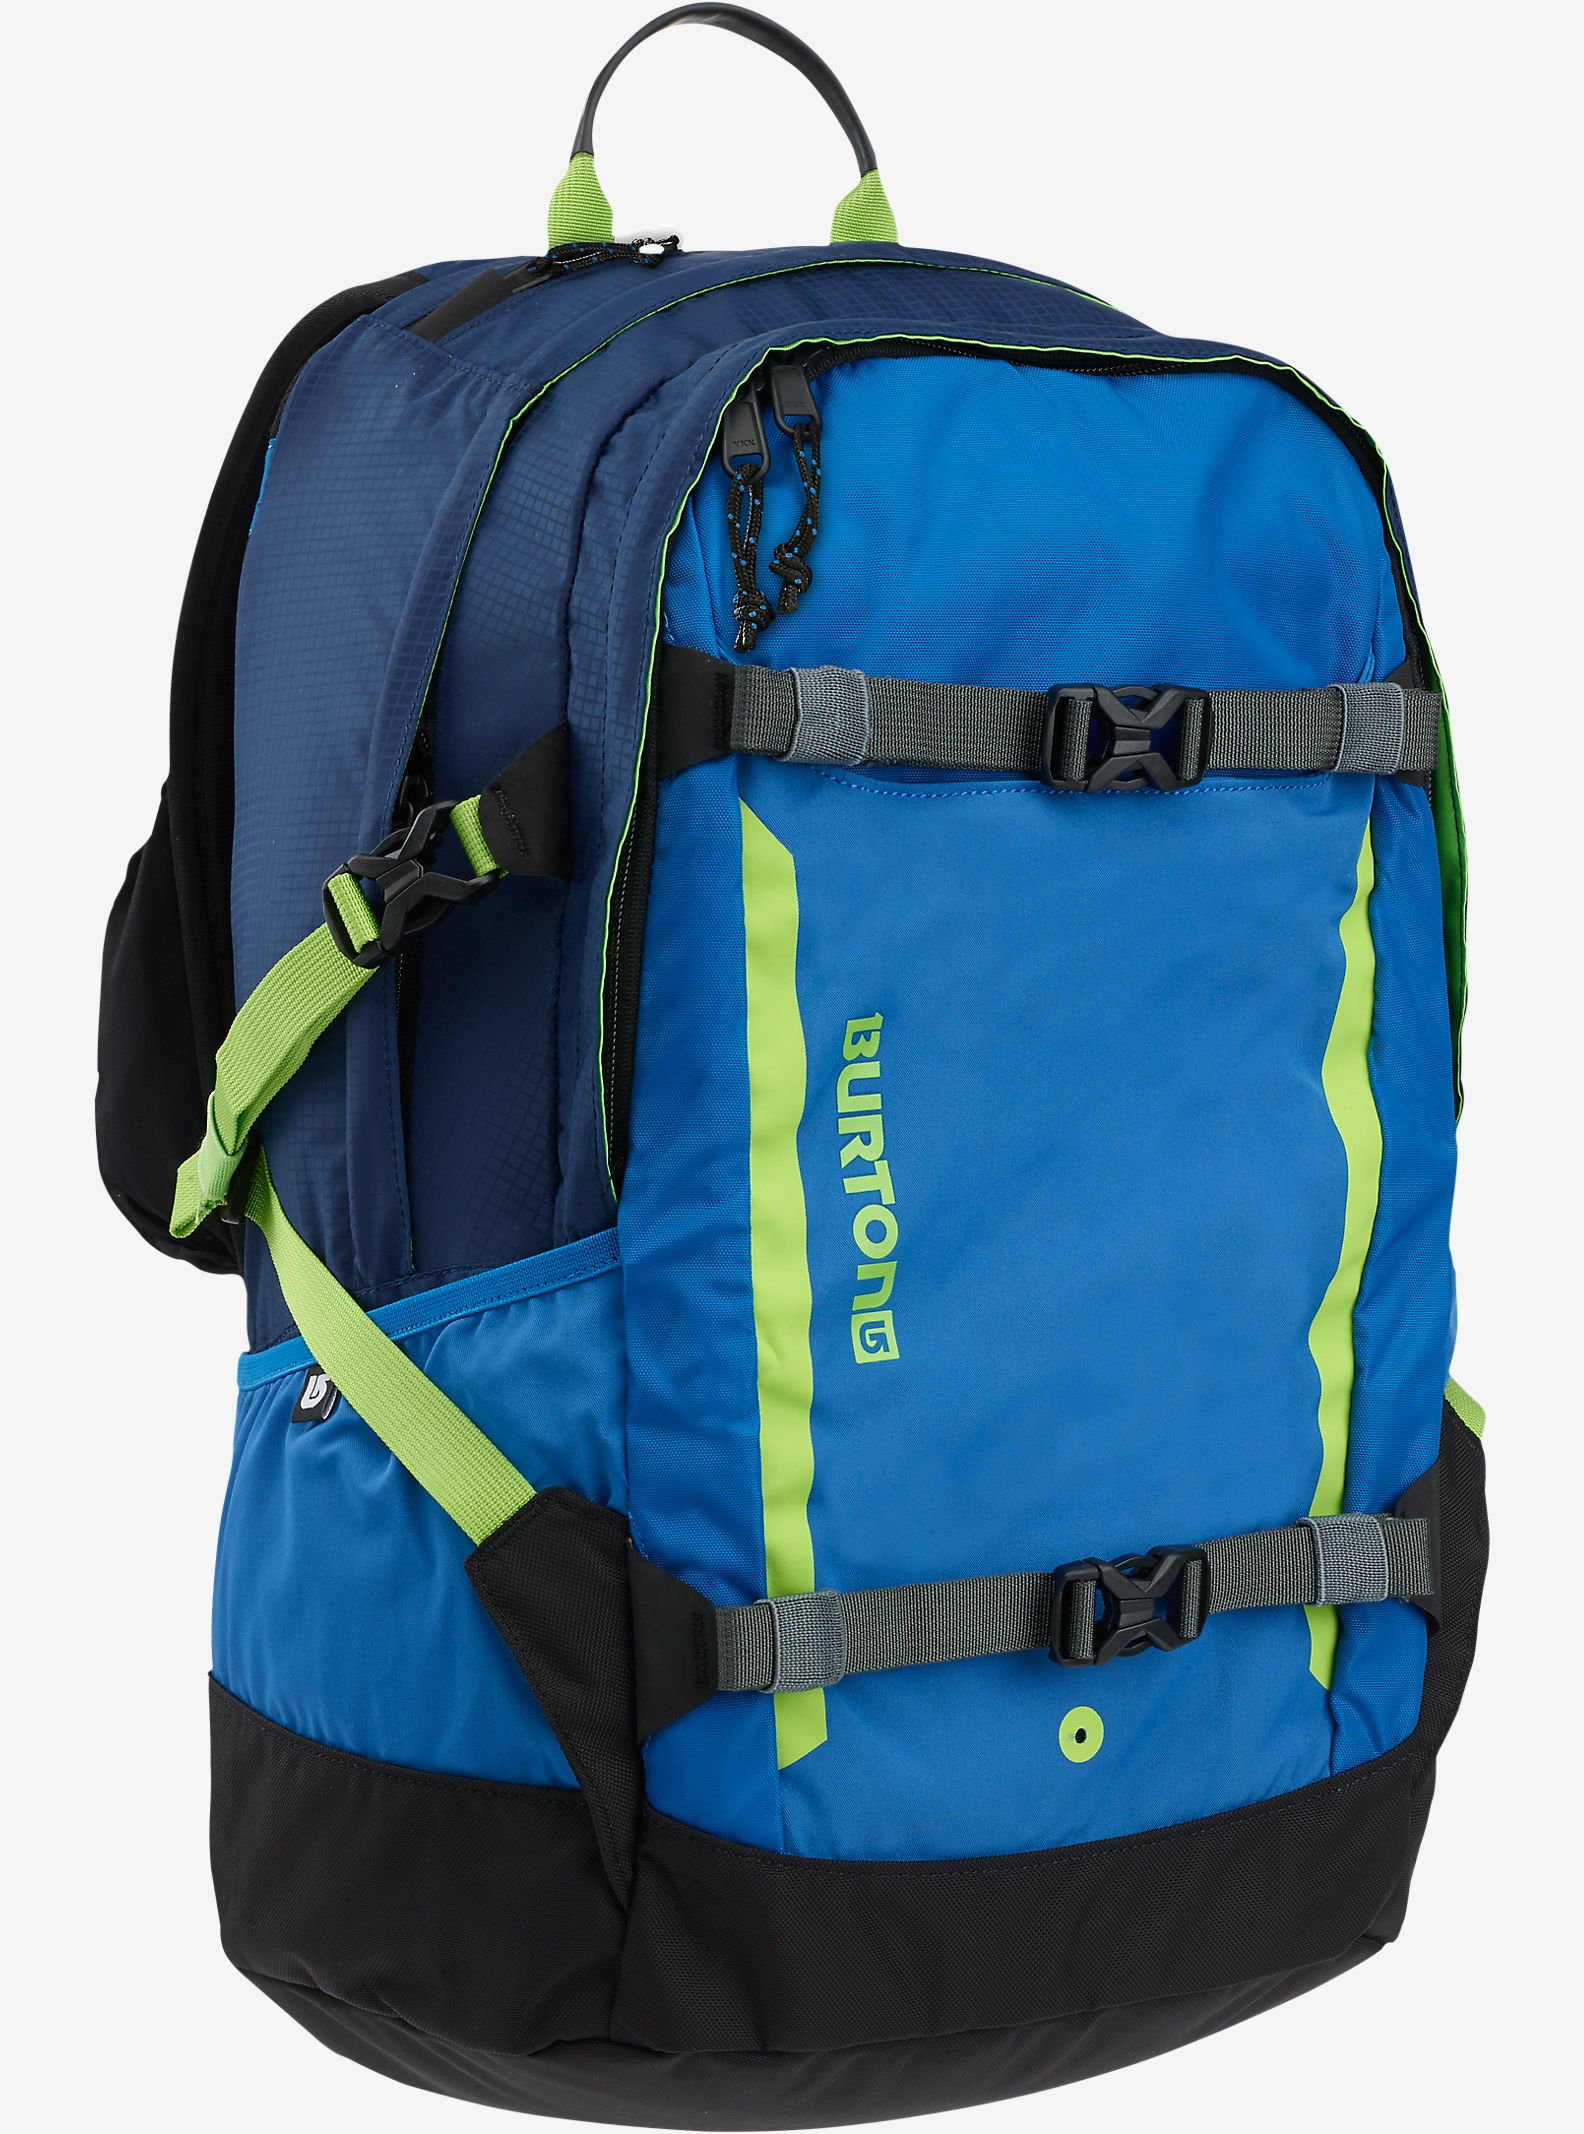 Burton Day Hiker Pro 28L Backpack shown in Skydiver Ripstop